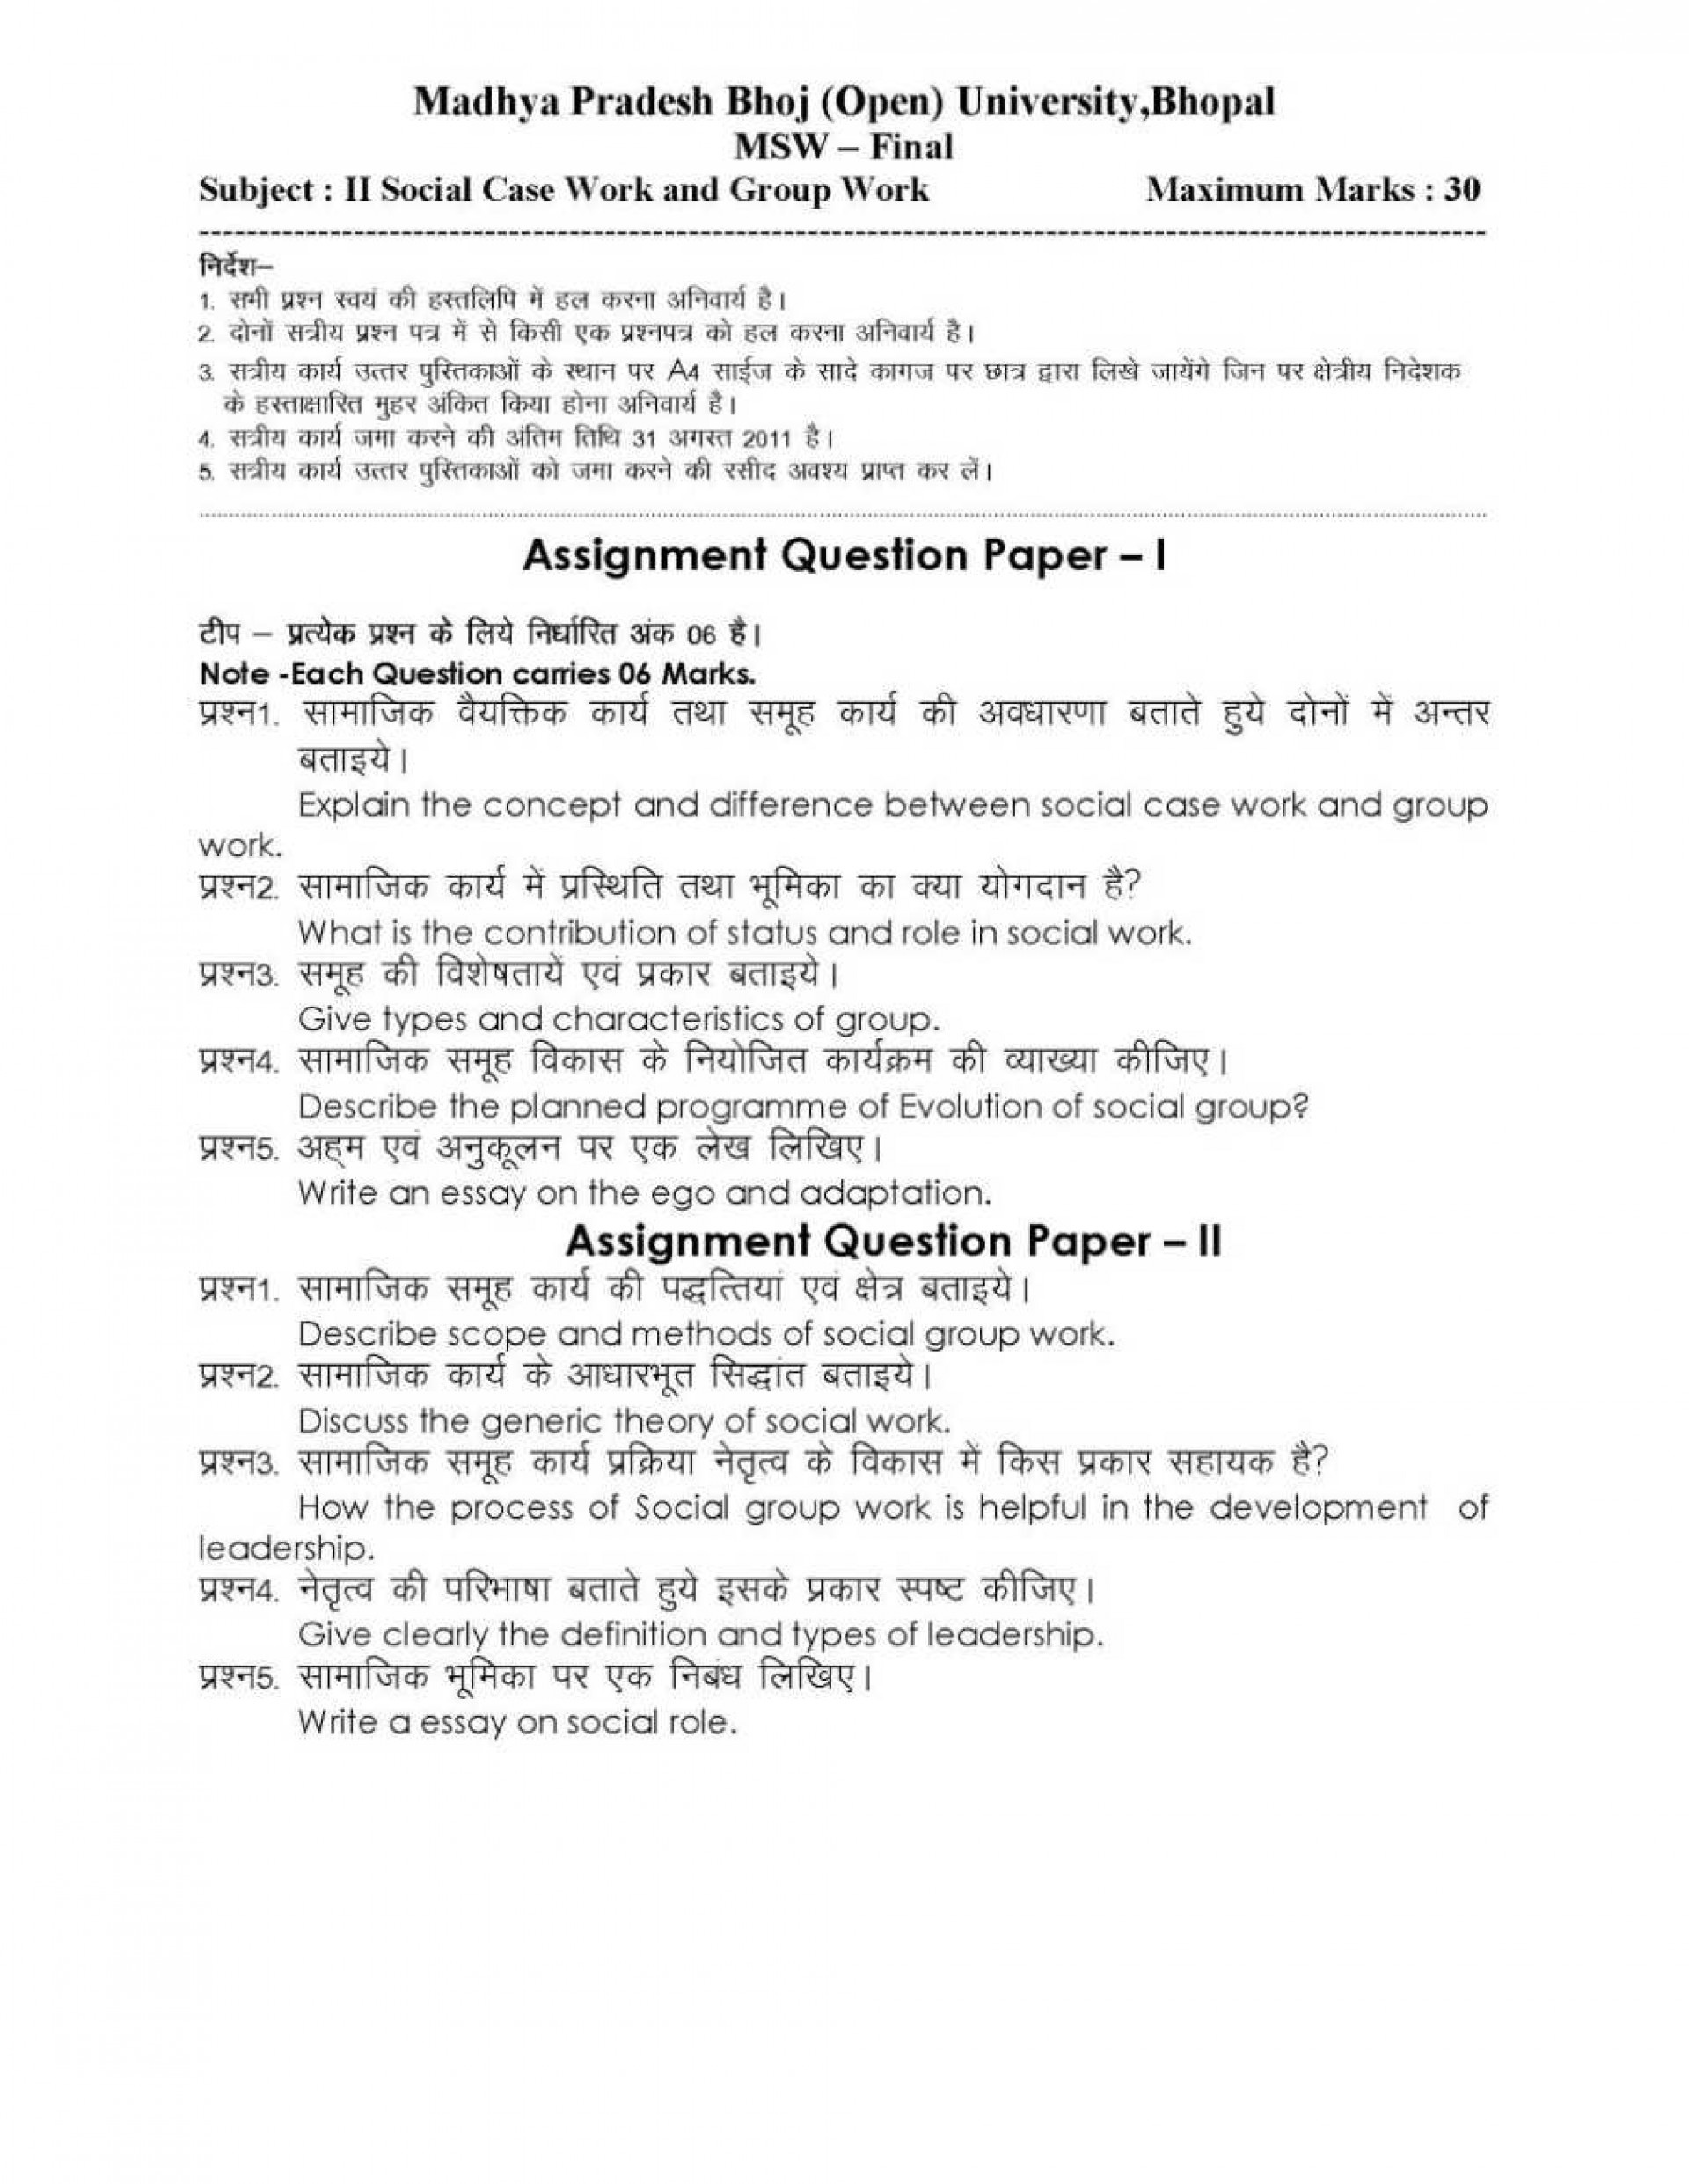 012 Bhoj University Bhopal Msw Essay Example Dreaded Definition Examples Love Beauty 1920